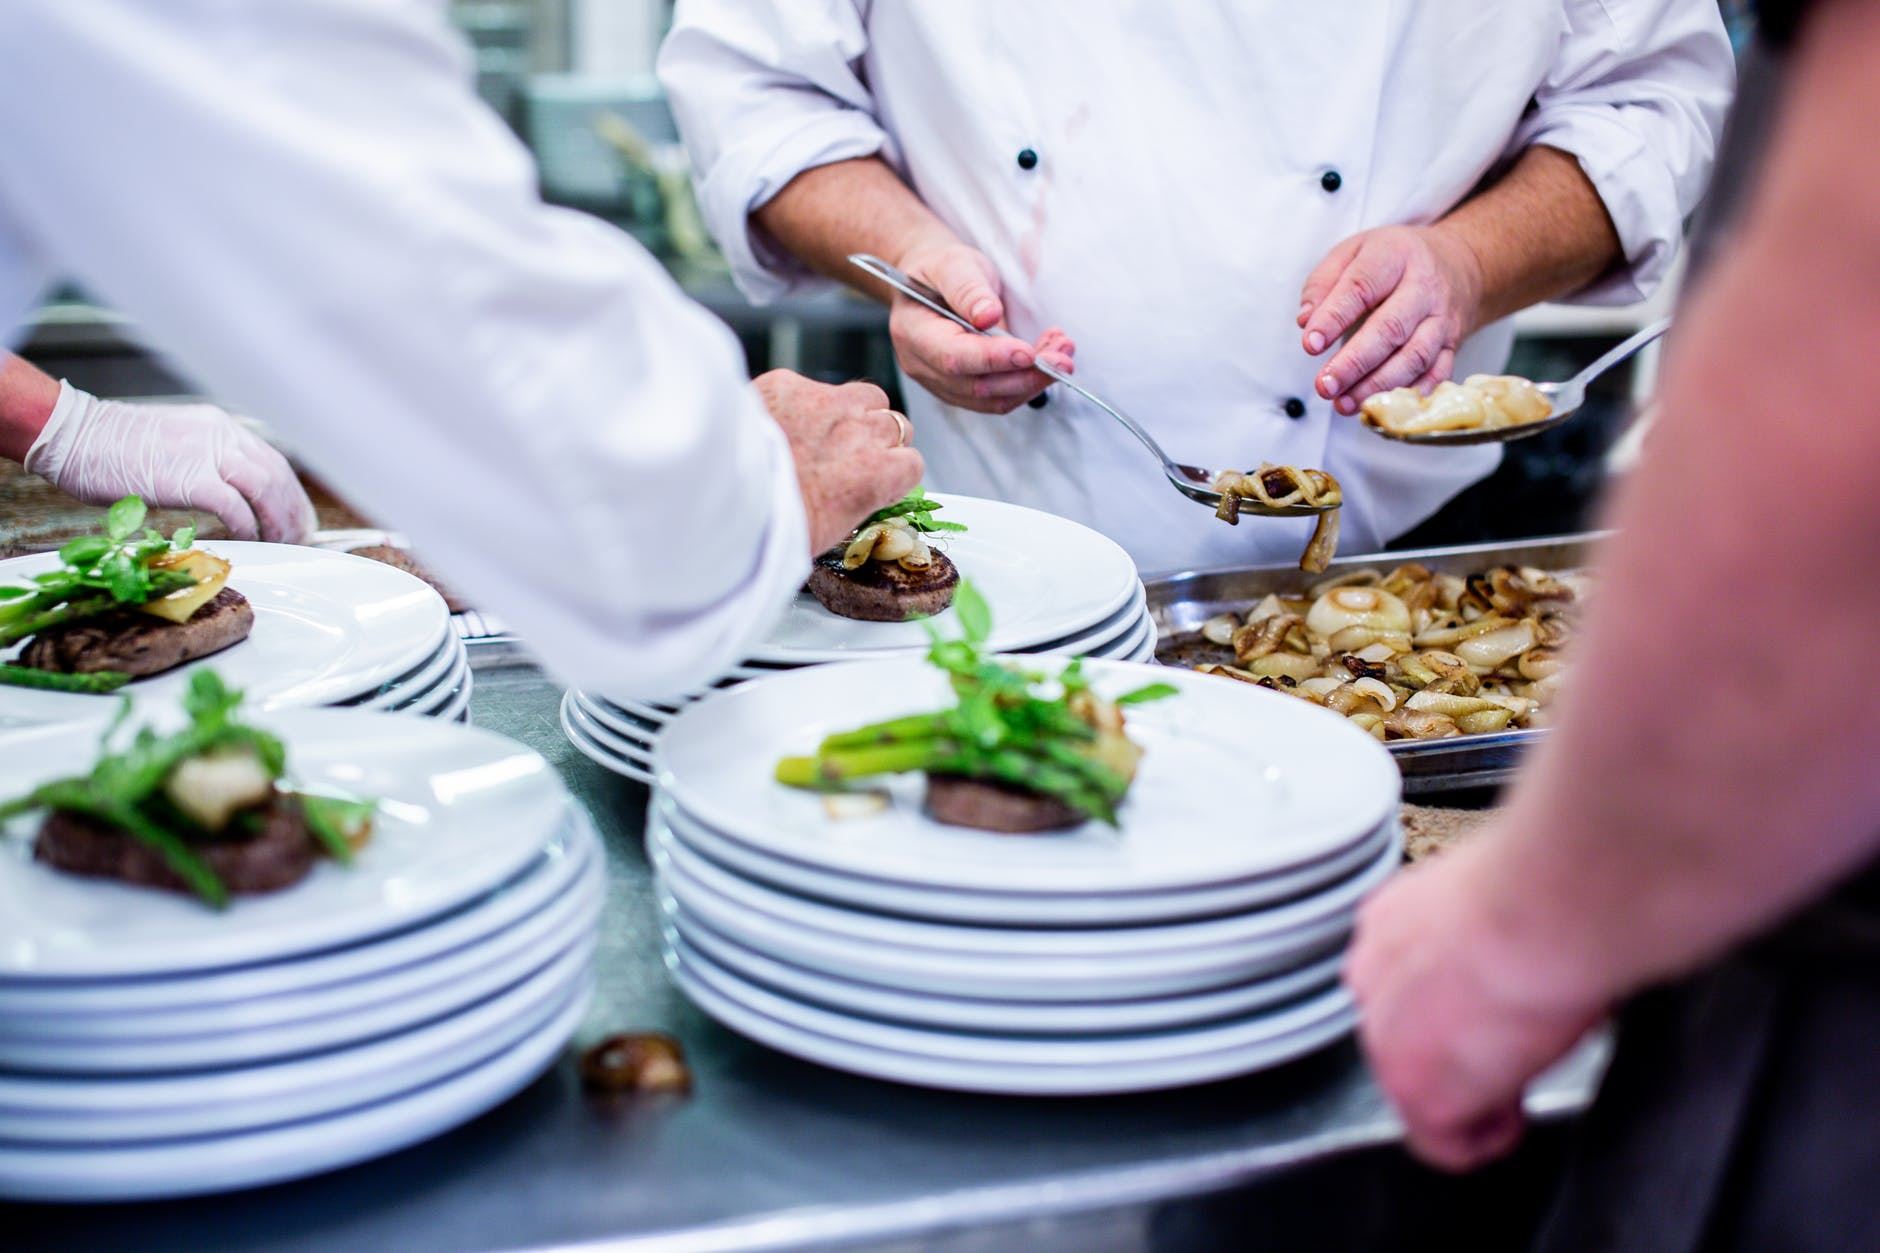 chefs preparing plates with steak and vegetables